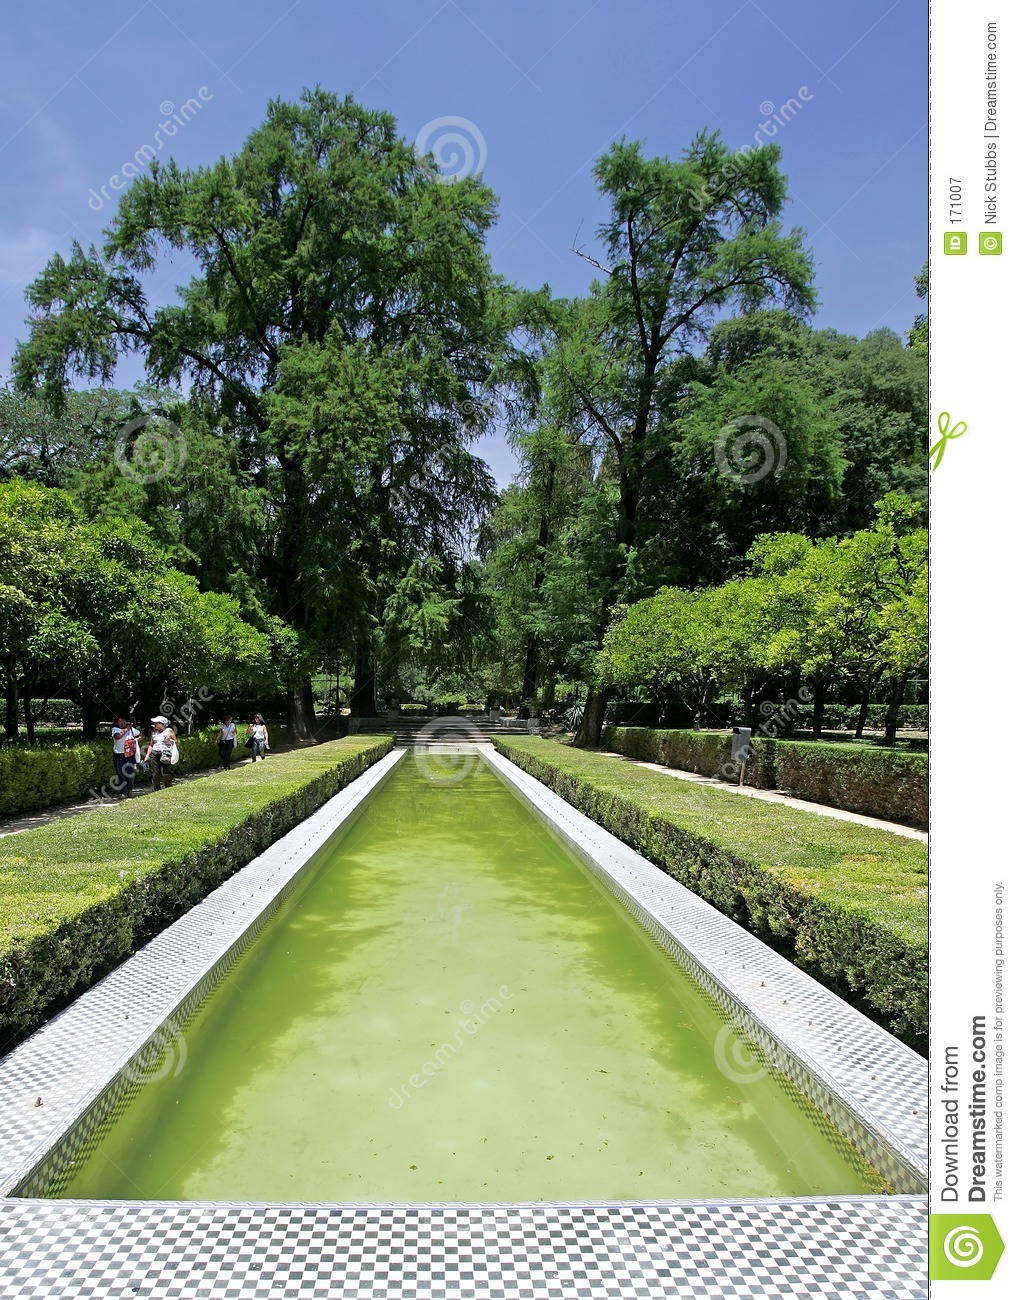 Pond and Fountain in Seville Garden